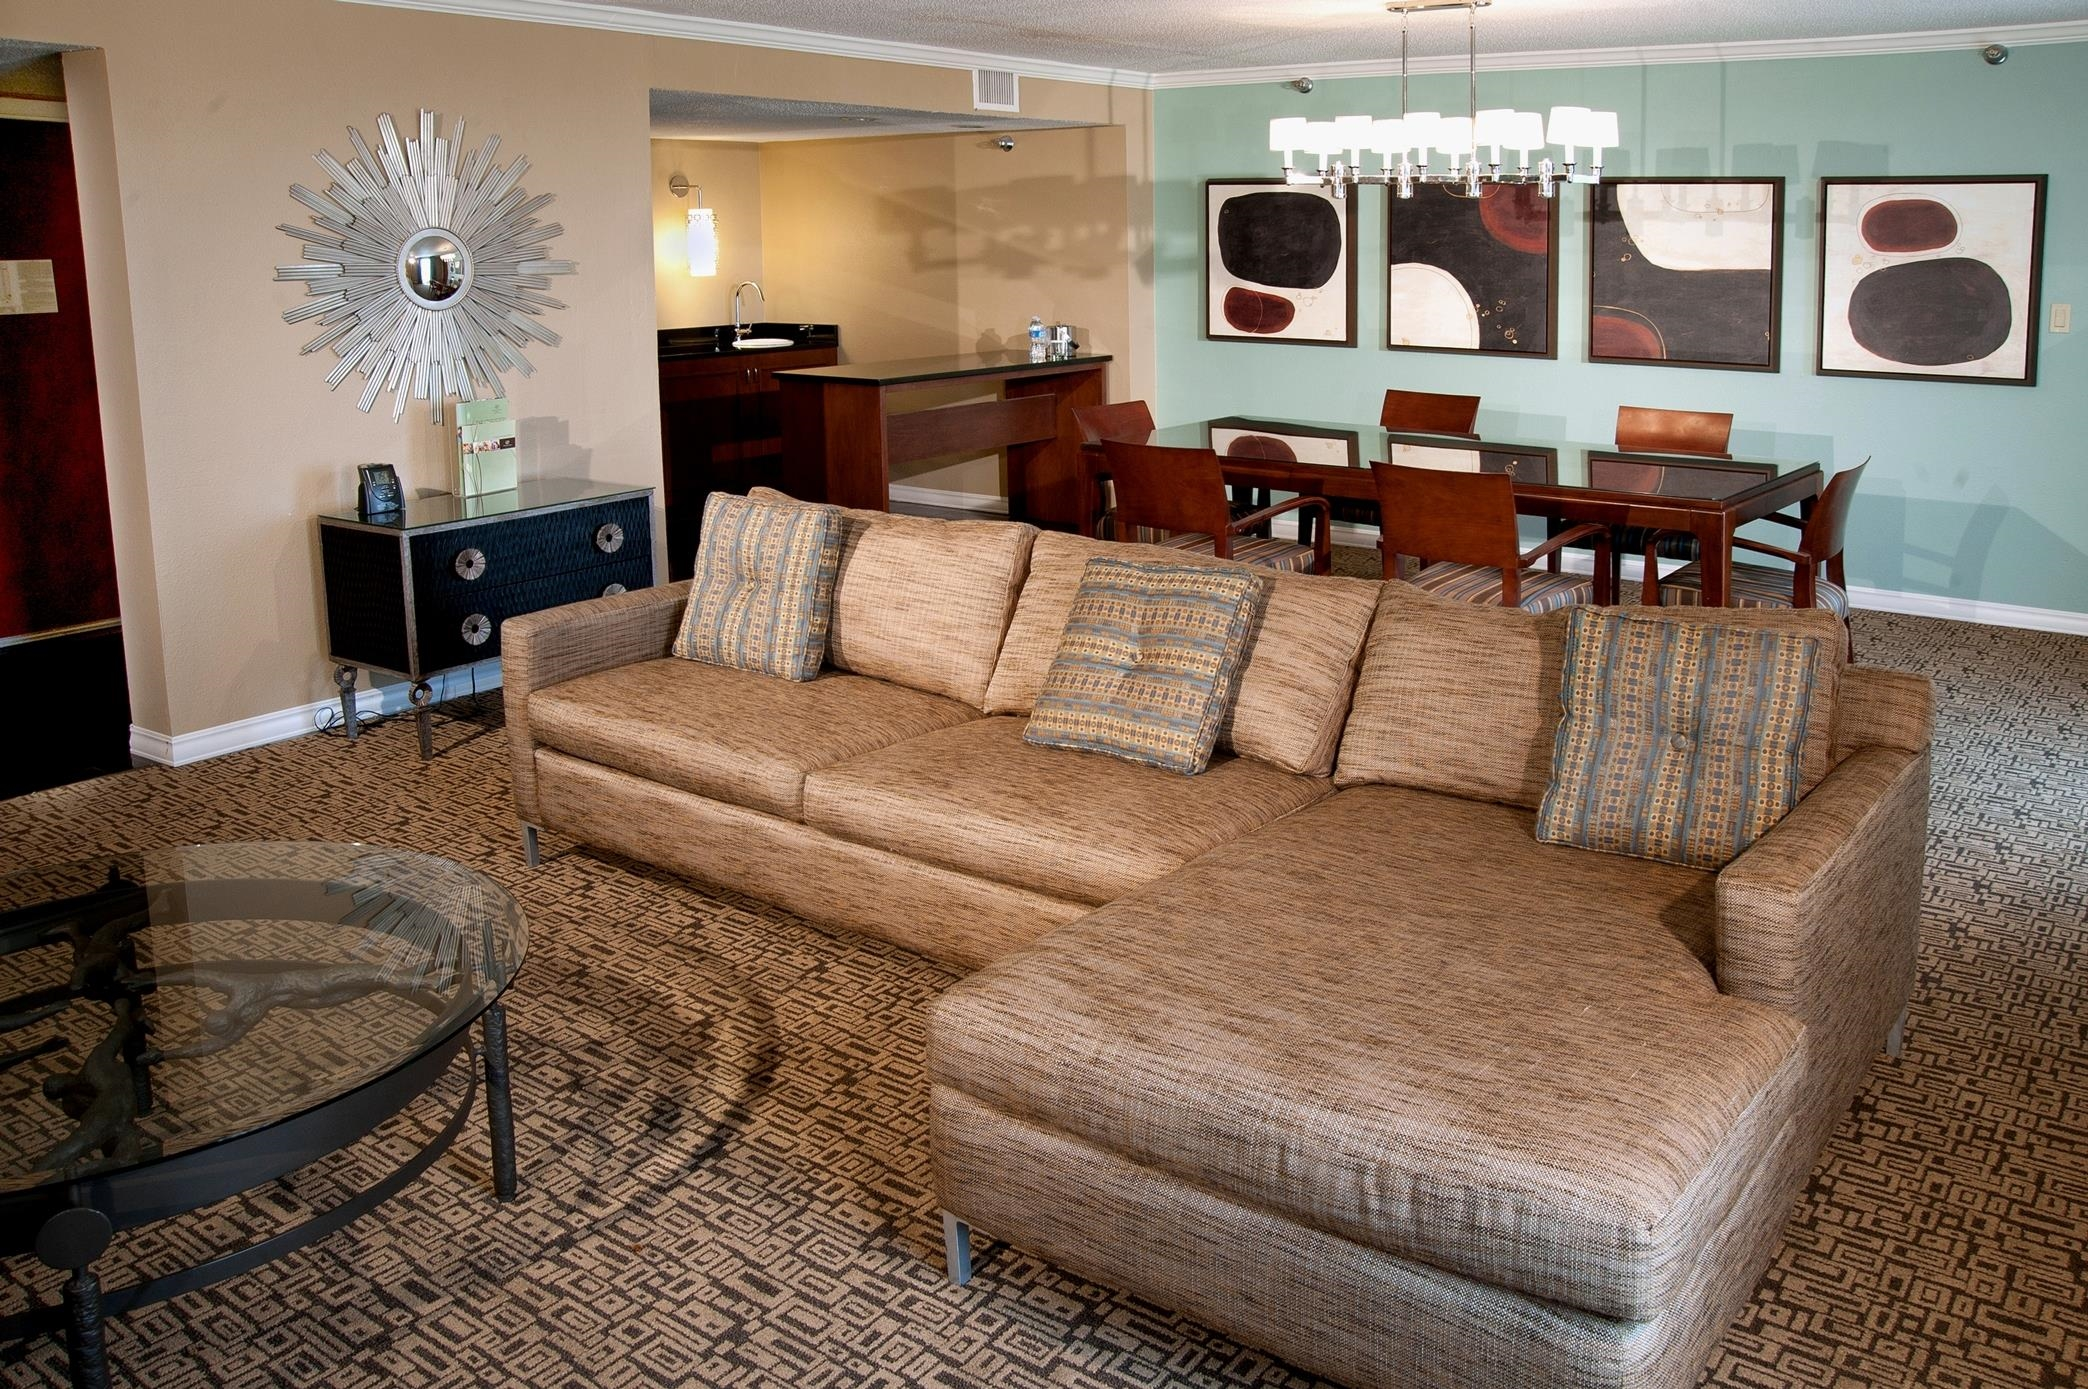 DoubleTree by Hilton Hotel Collinsville - St. Louis image 14